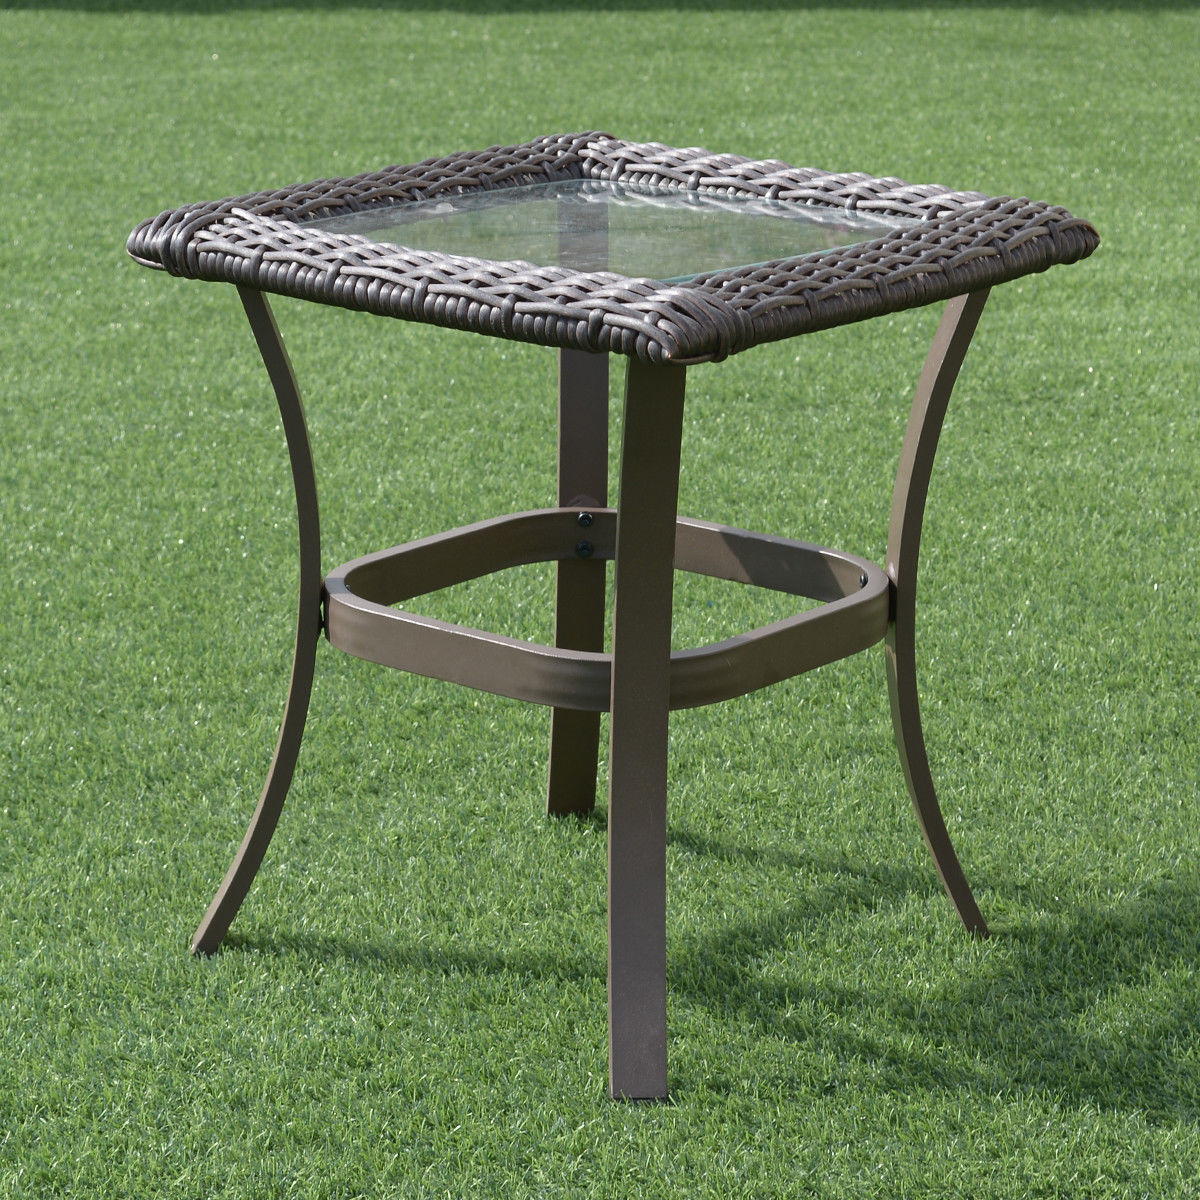 Gymax 3PC Patio Rattan Wicker Furniture Set Cushioned Outdoor Garden - image 4 of 8